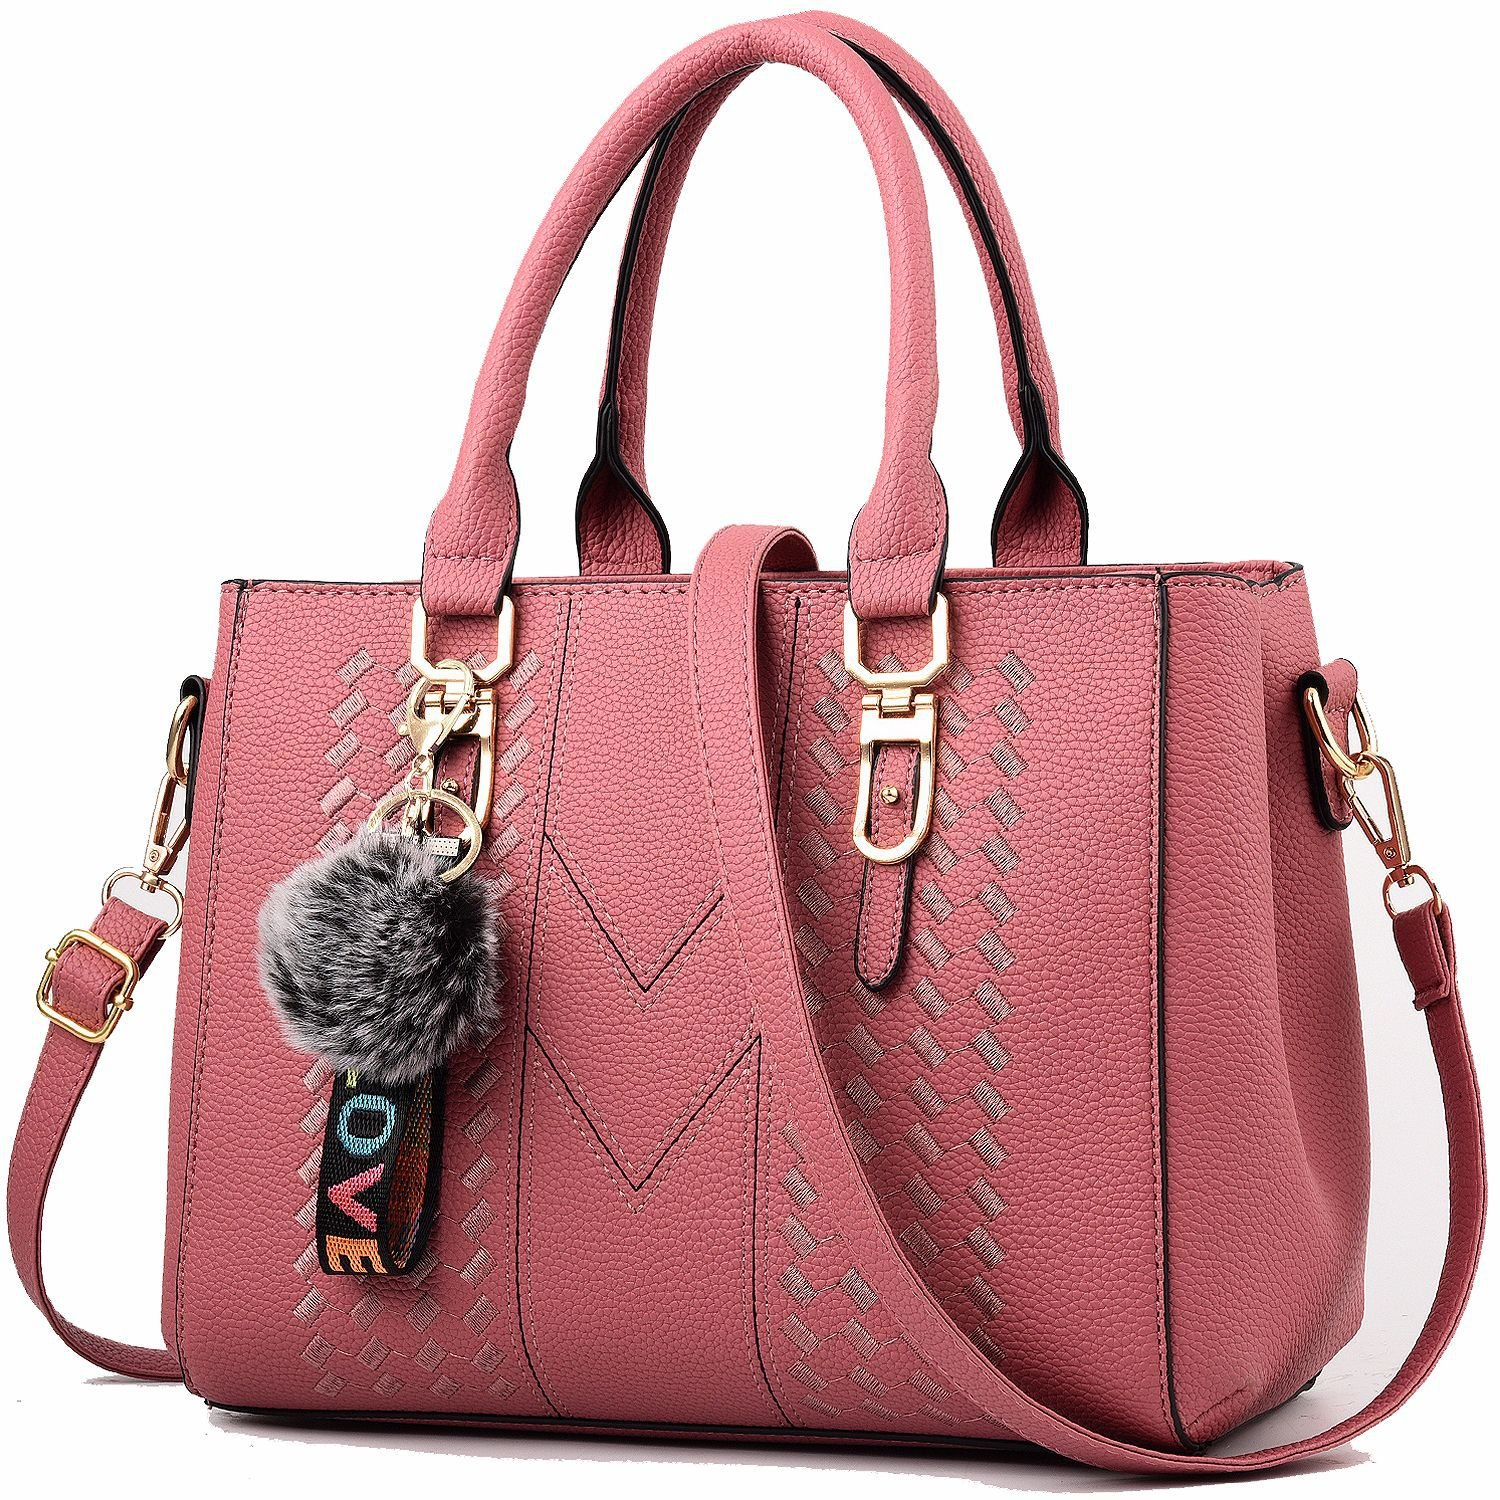 YNIQUE Satchel Purses and Handbags for Women Shoulder Tote Bags